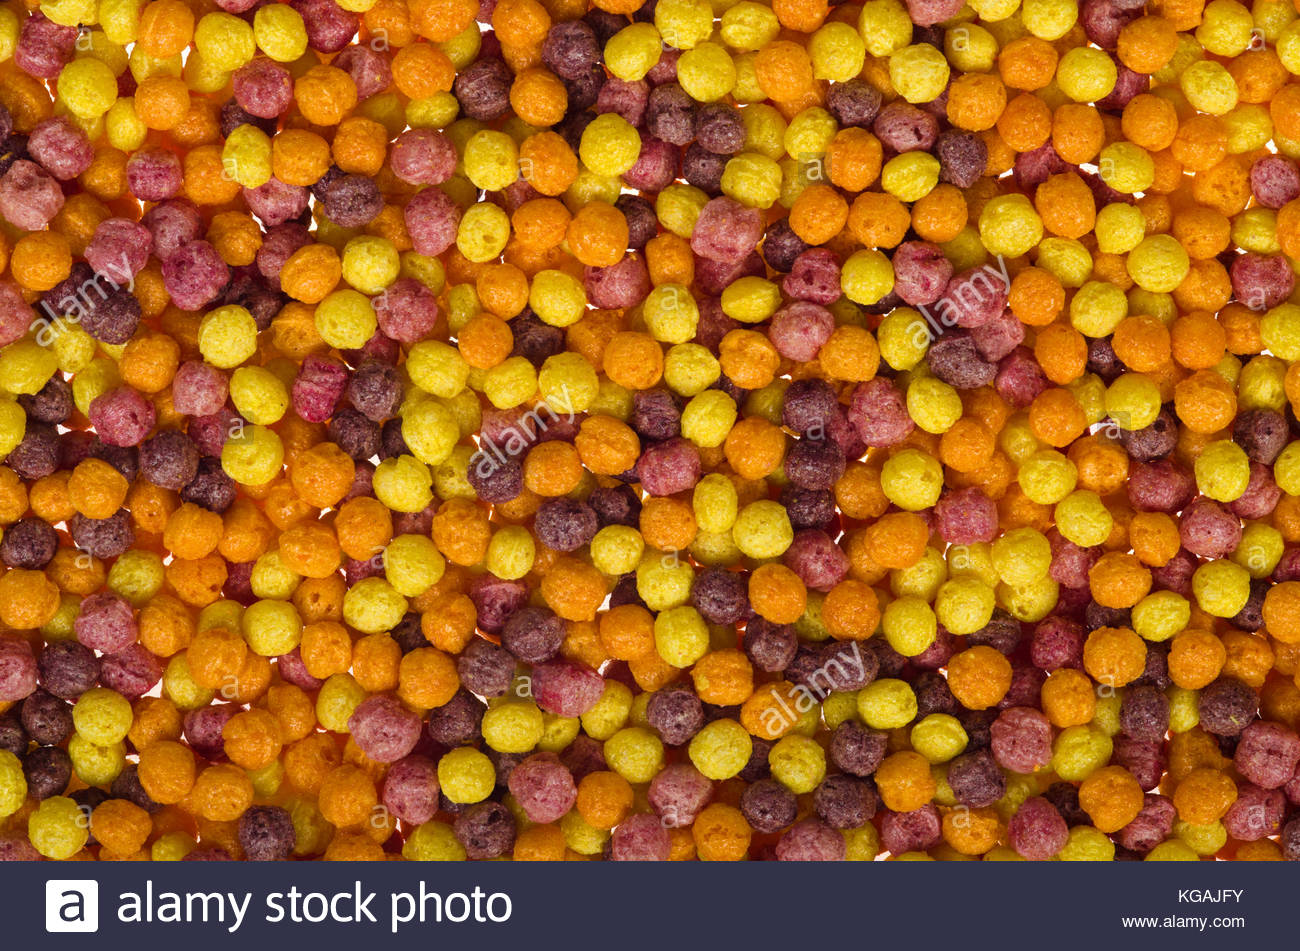 Colourful trix cereal background pattern concept Stock Photo 1300x951